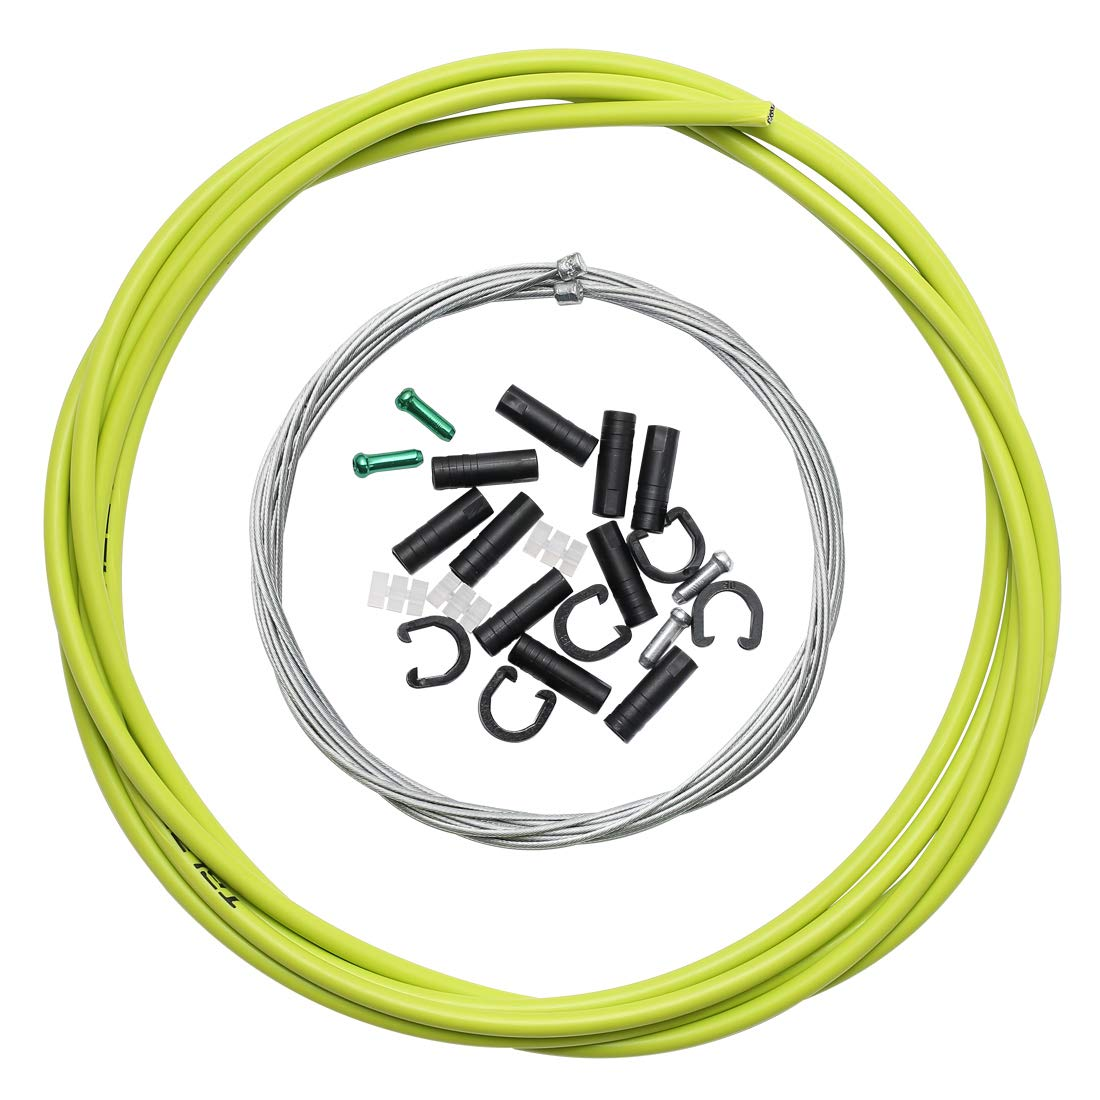 Dymoece Universal Bicycle Shifter Cable Housing Bike Derailleur Cable Hose Kit for Shimano Sram MTB Road Bike